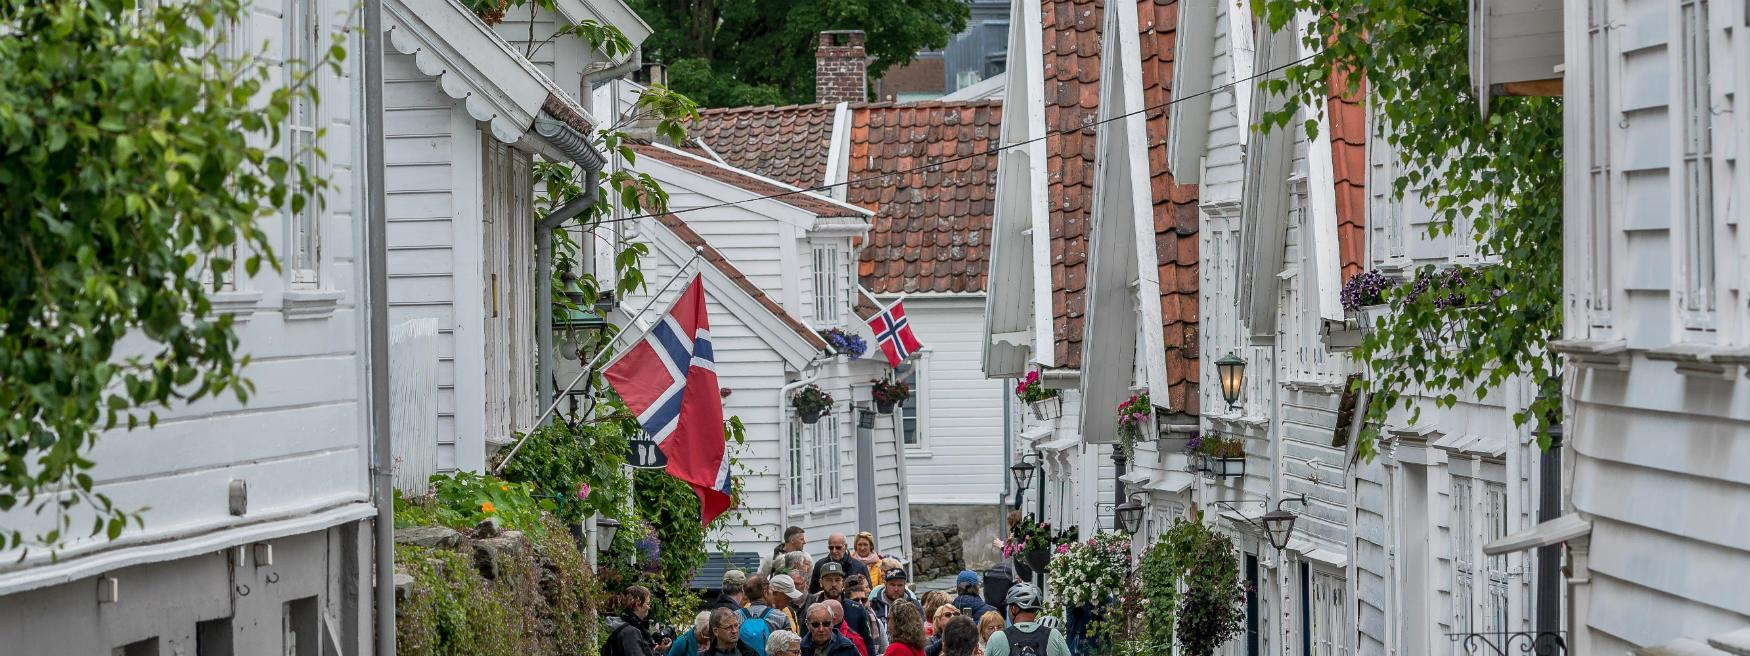 Busy day in Old Stavanger